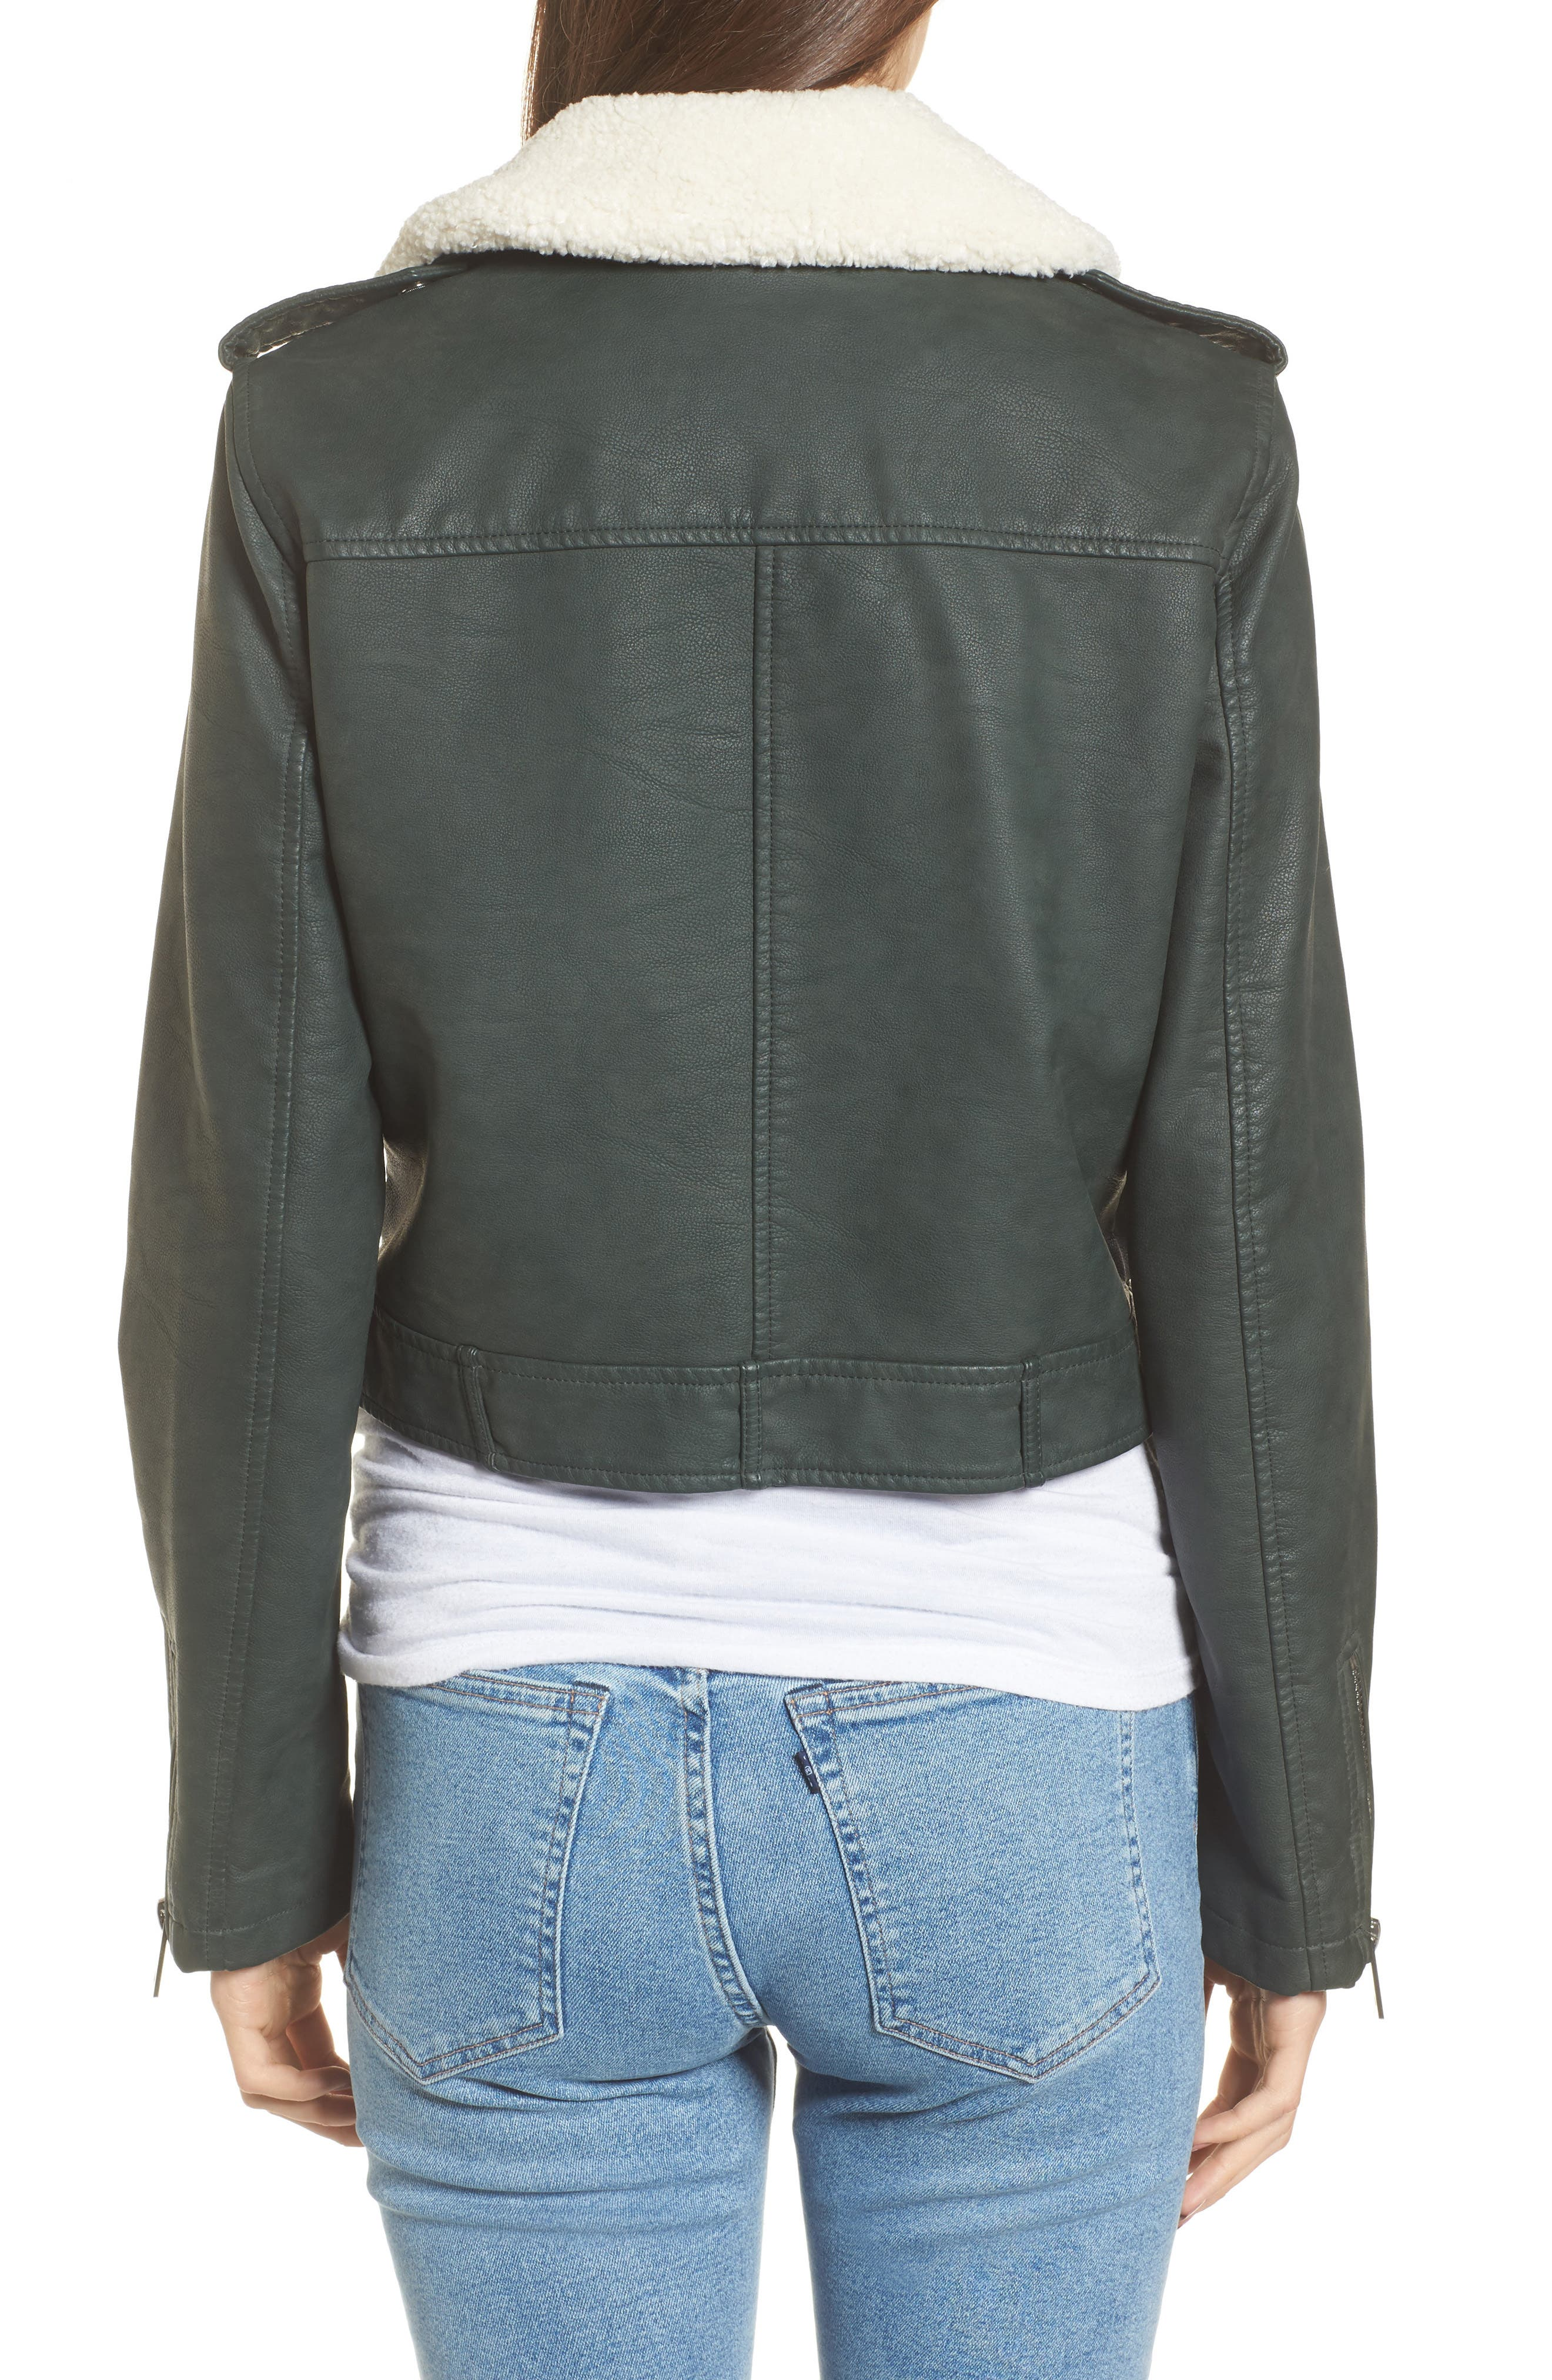 Levis<sup>®</sup> Sherpa Faux Leather Moto Jacket with Faux Fur Collar,                             Alternate thumbnail 4, color,